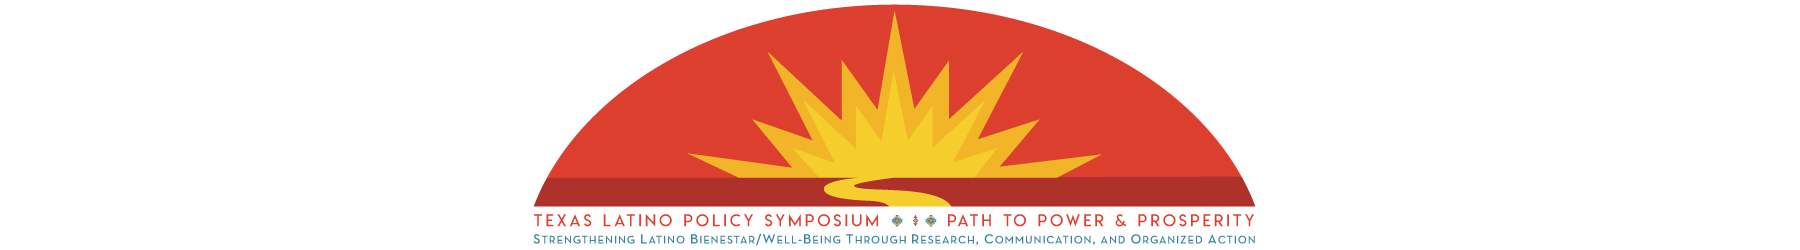 Texas Latino Policy Symposium